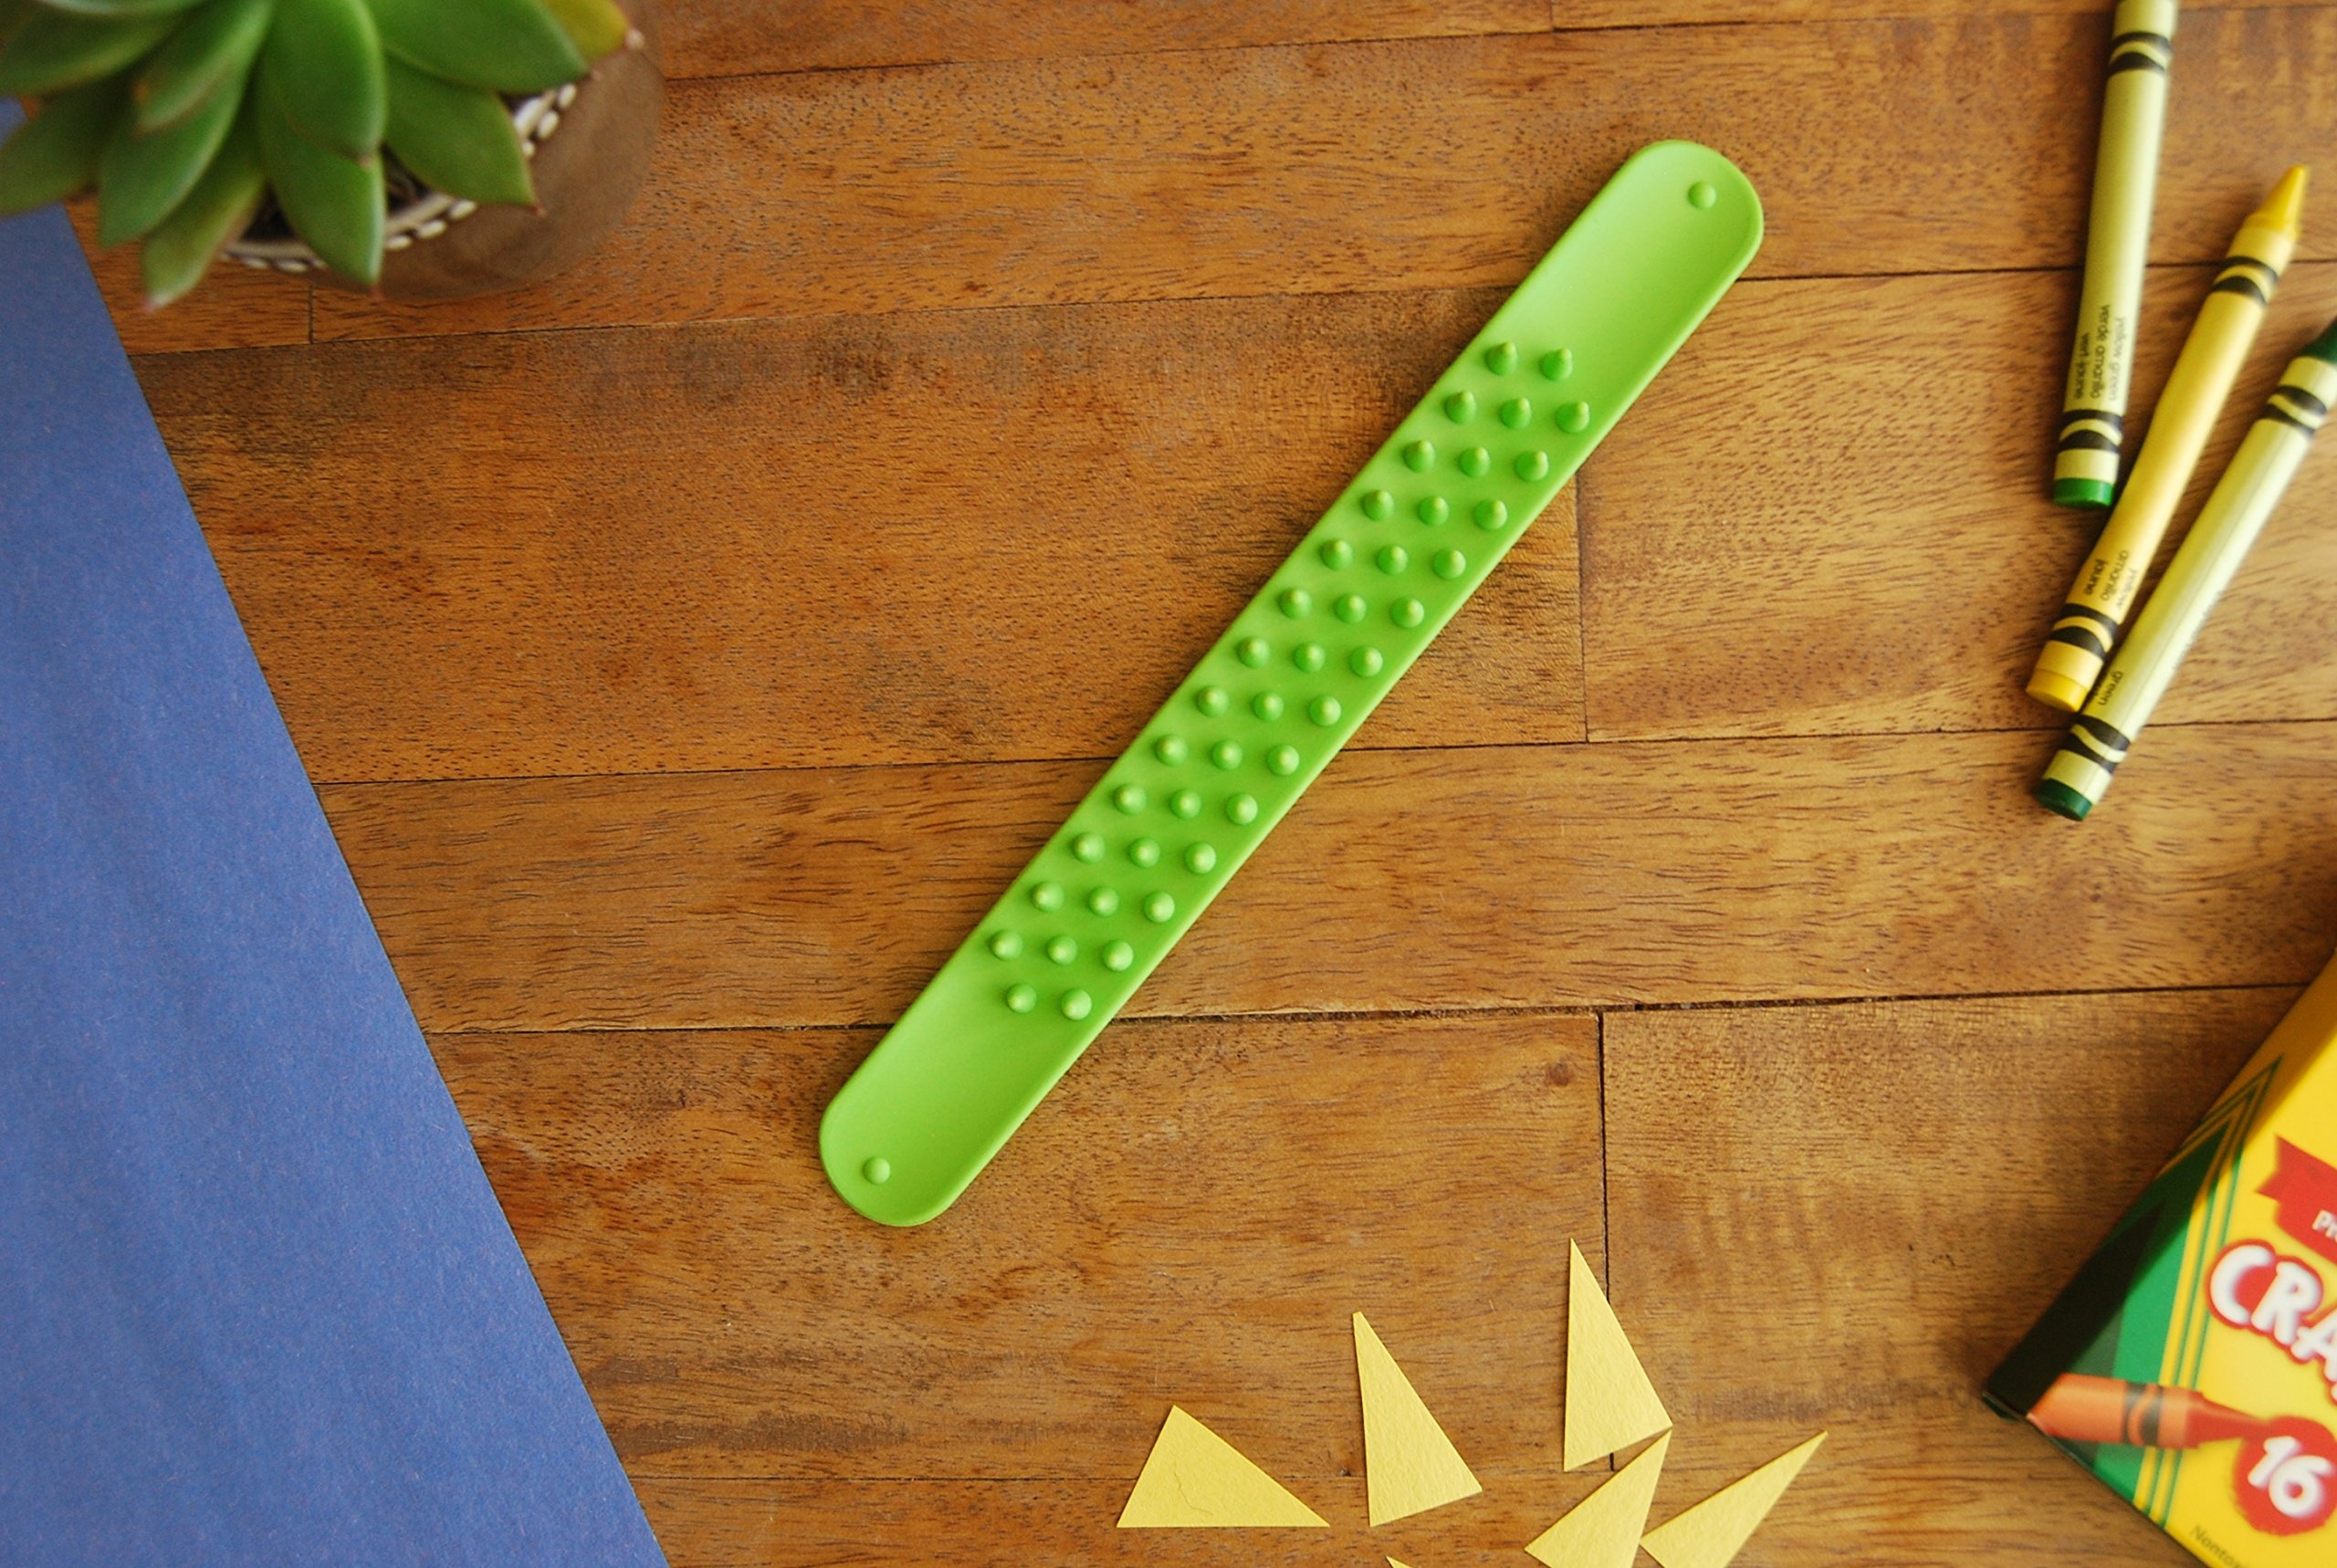 Spiky Slap Bracelets / Slap Bands (3 Pack) - Great Sensory Toys / Fidget Toys - BPA/Phthalate/Latex-Free by Impresa Products (Image #2)